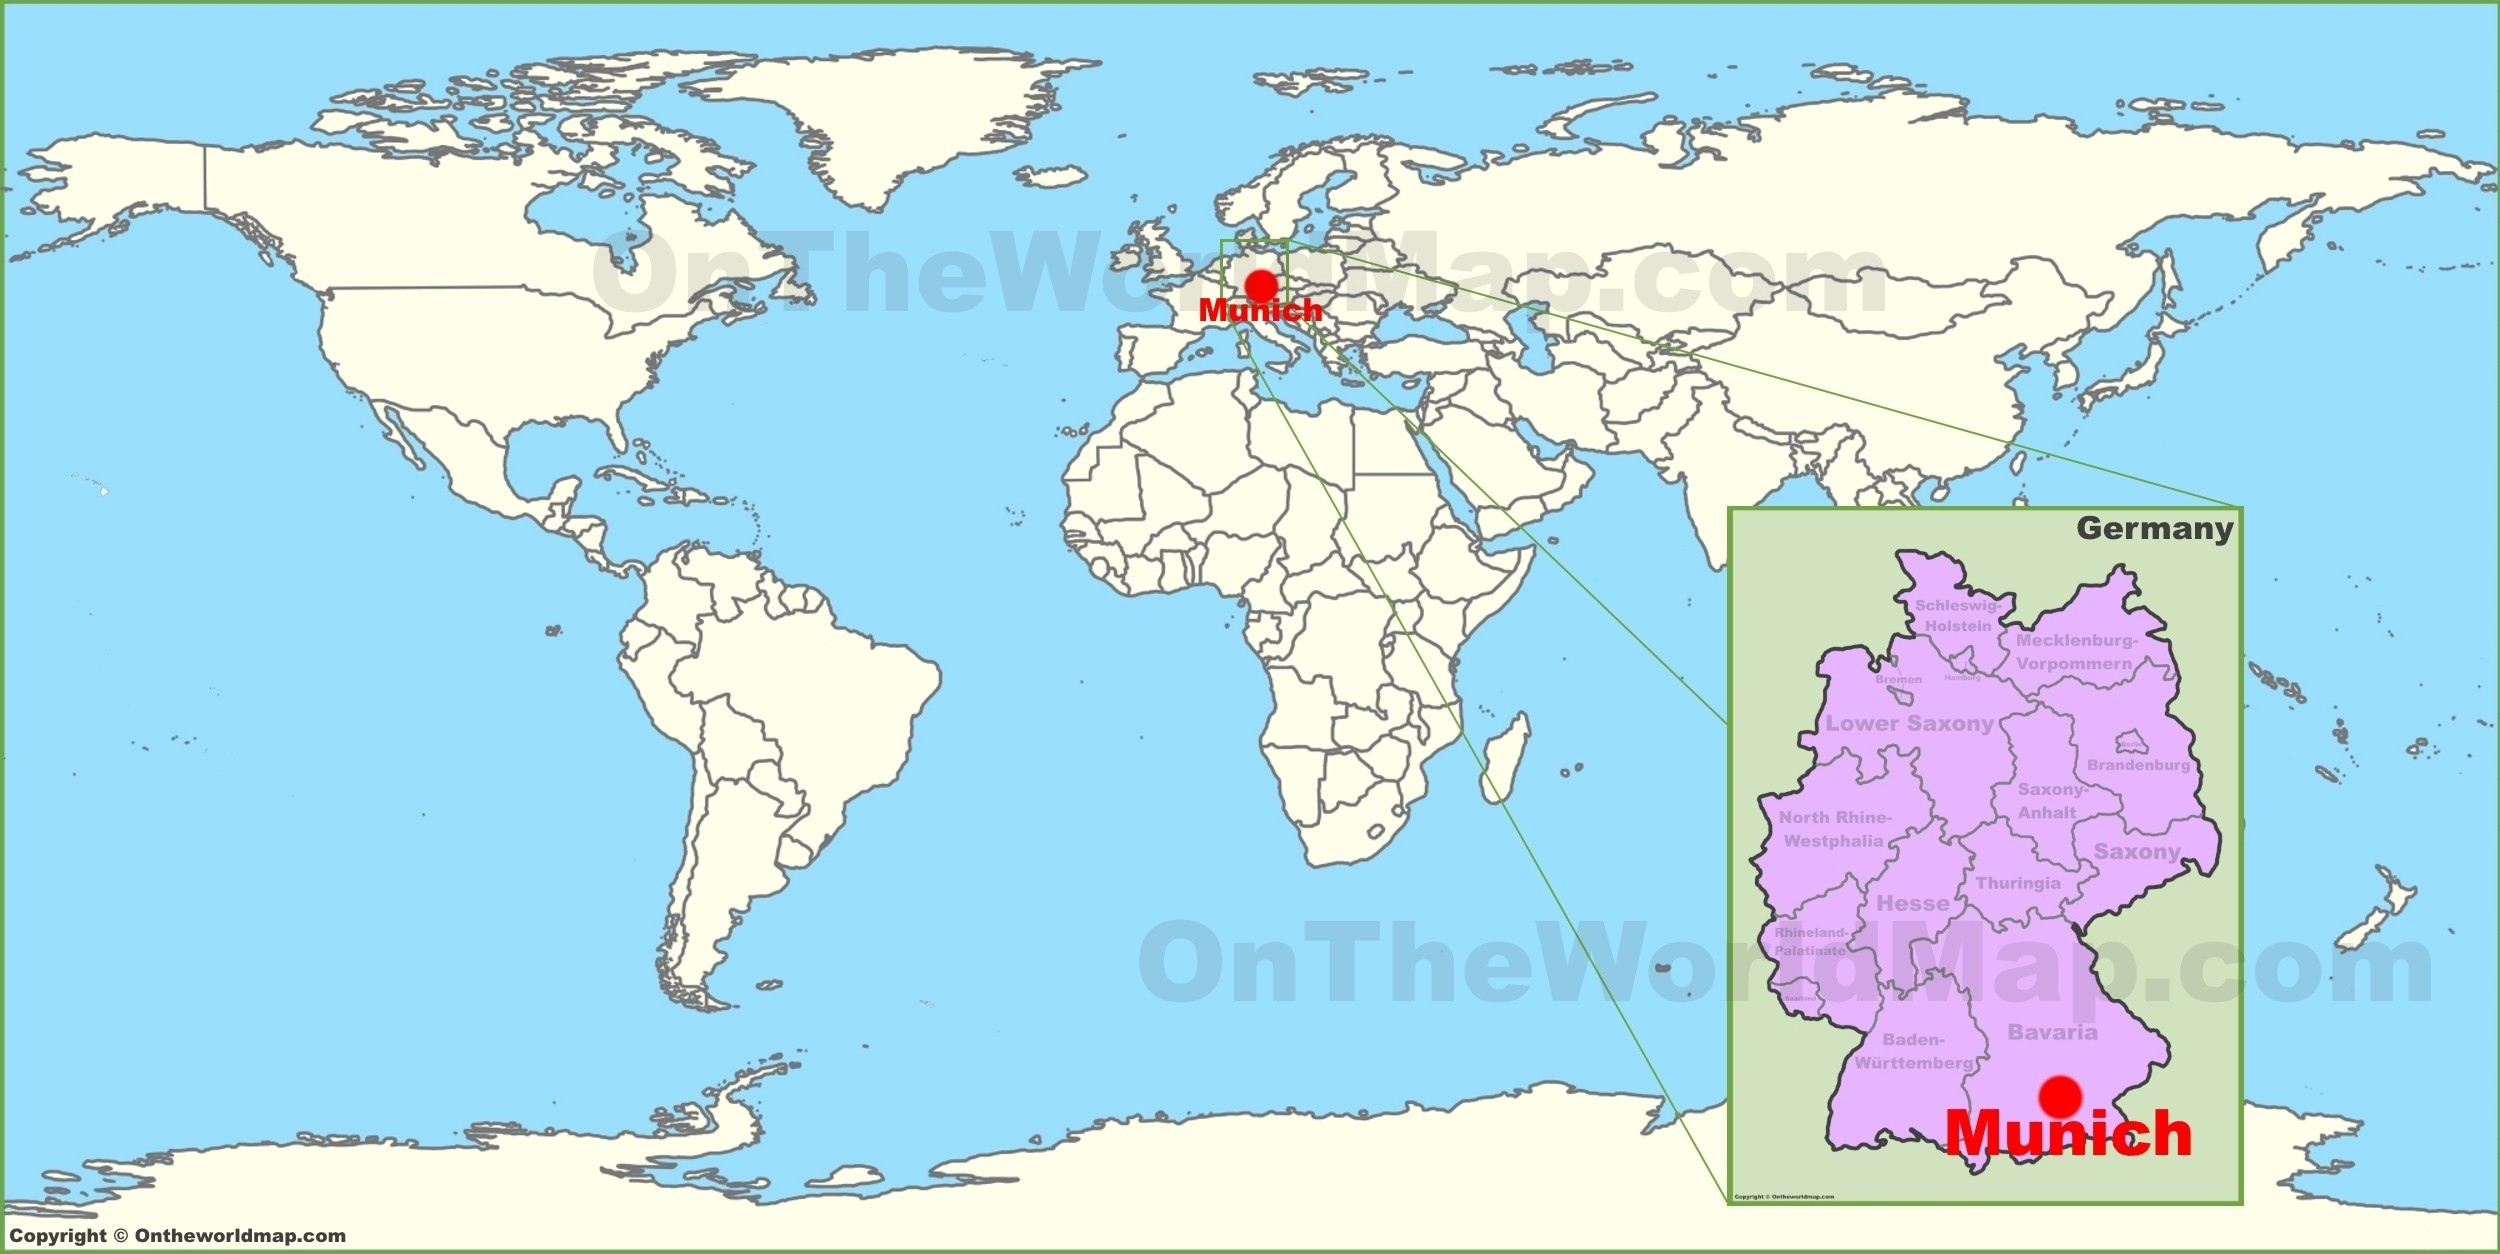 Munich On The World Map Germany 6 - World Wide Maps within World Map With Germany Highlighted